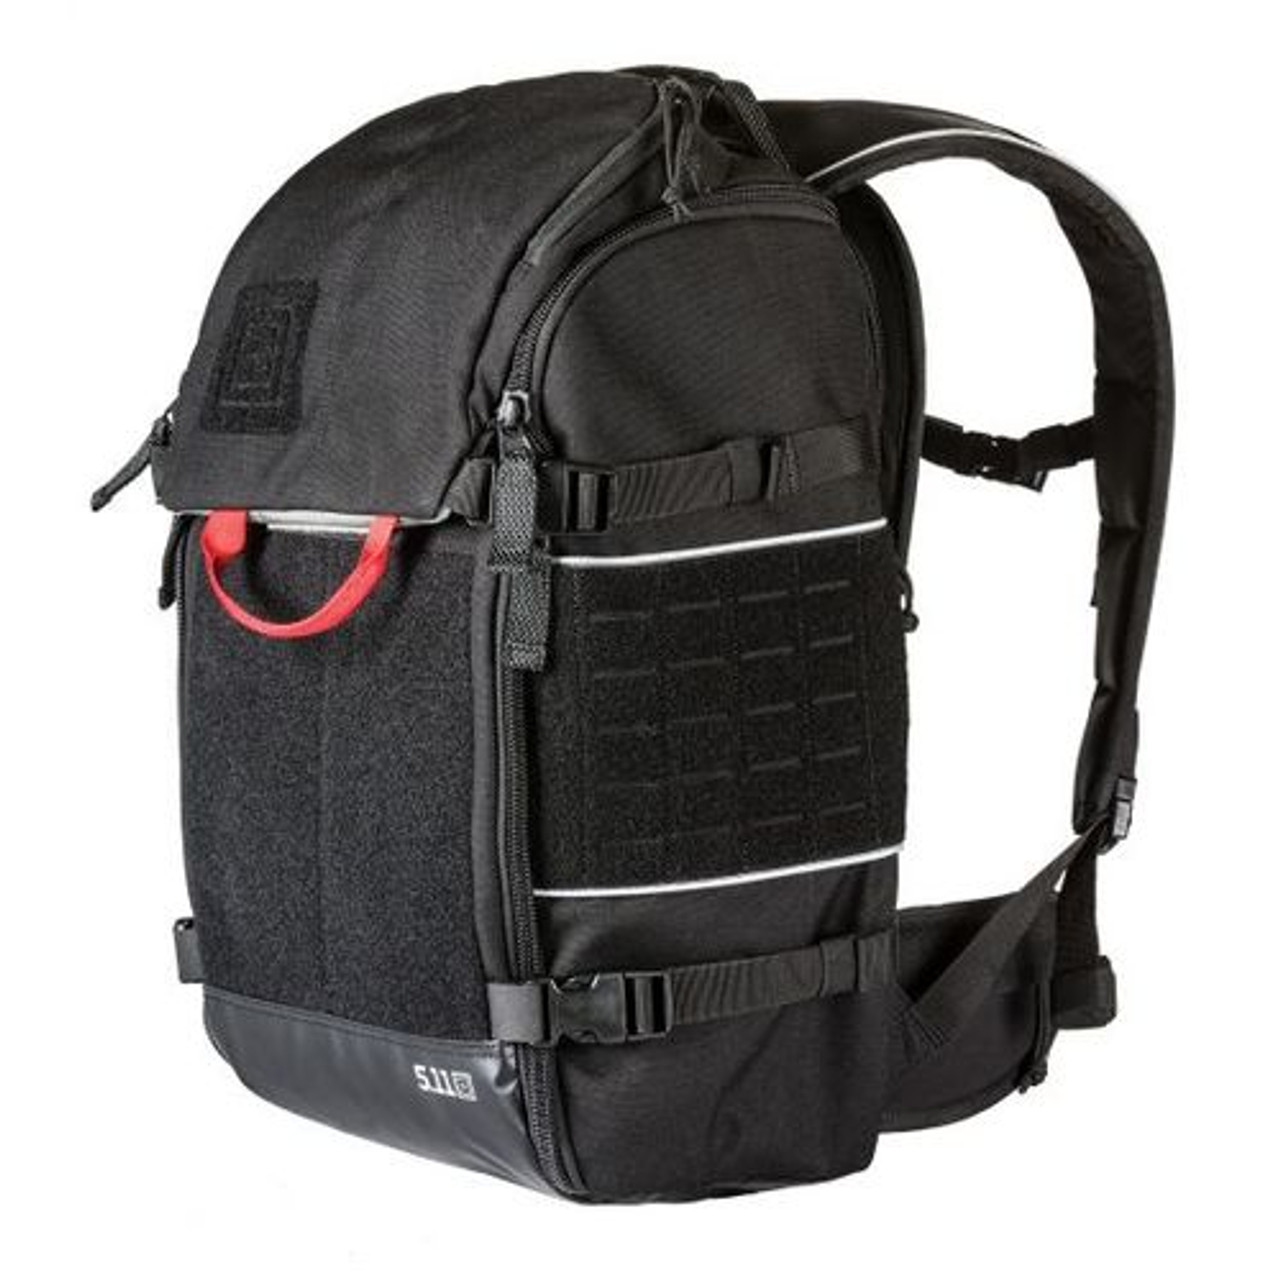 Black Long Zippered Main Compartment 2-Handles Carrying Bag for Metal Detector